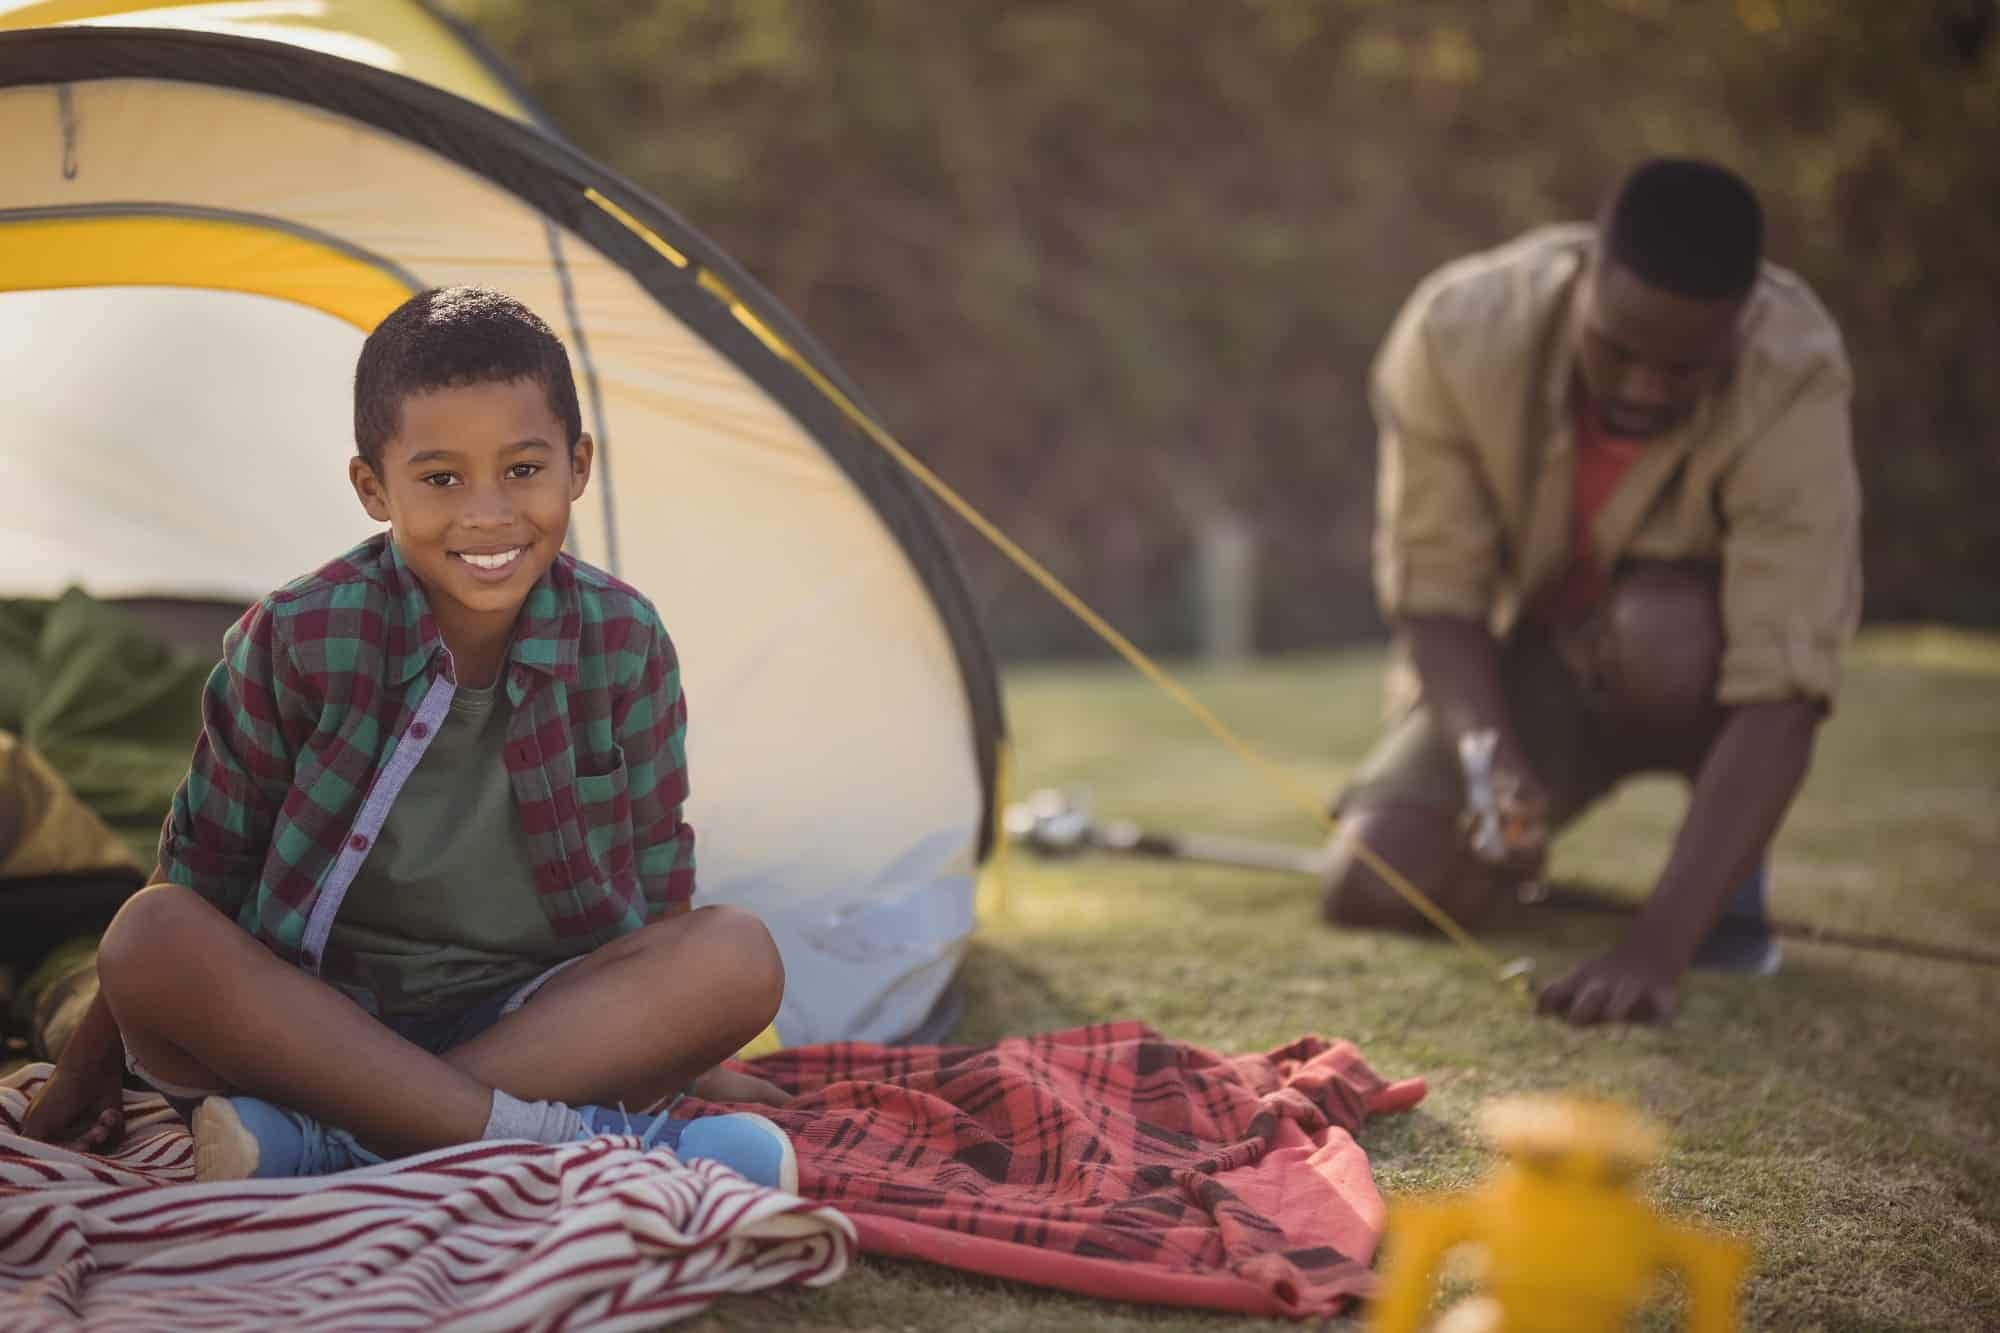 Tips on Booking a Campsite at National Parks, State Parks, and Private Campgrounds